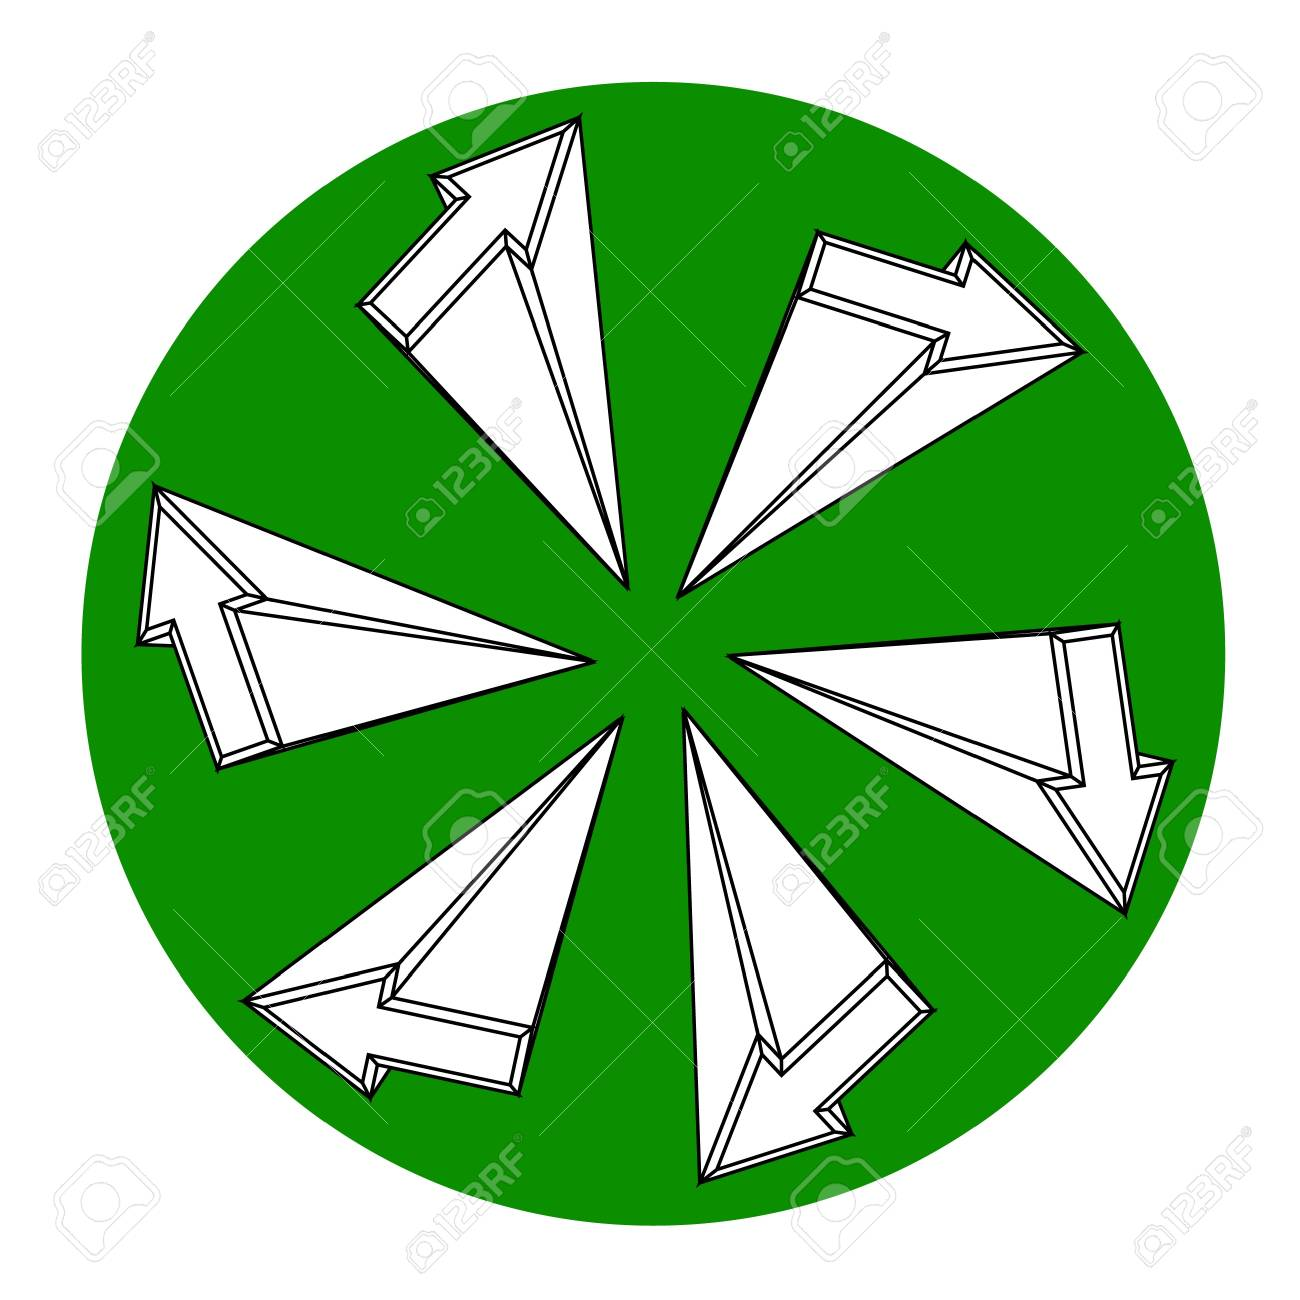 Green circle arrows icon Stock Vector - 11821953